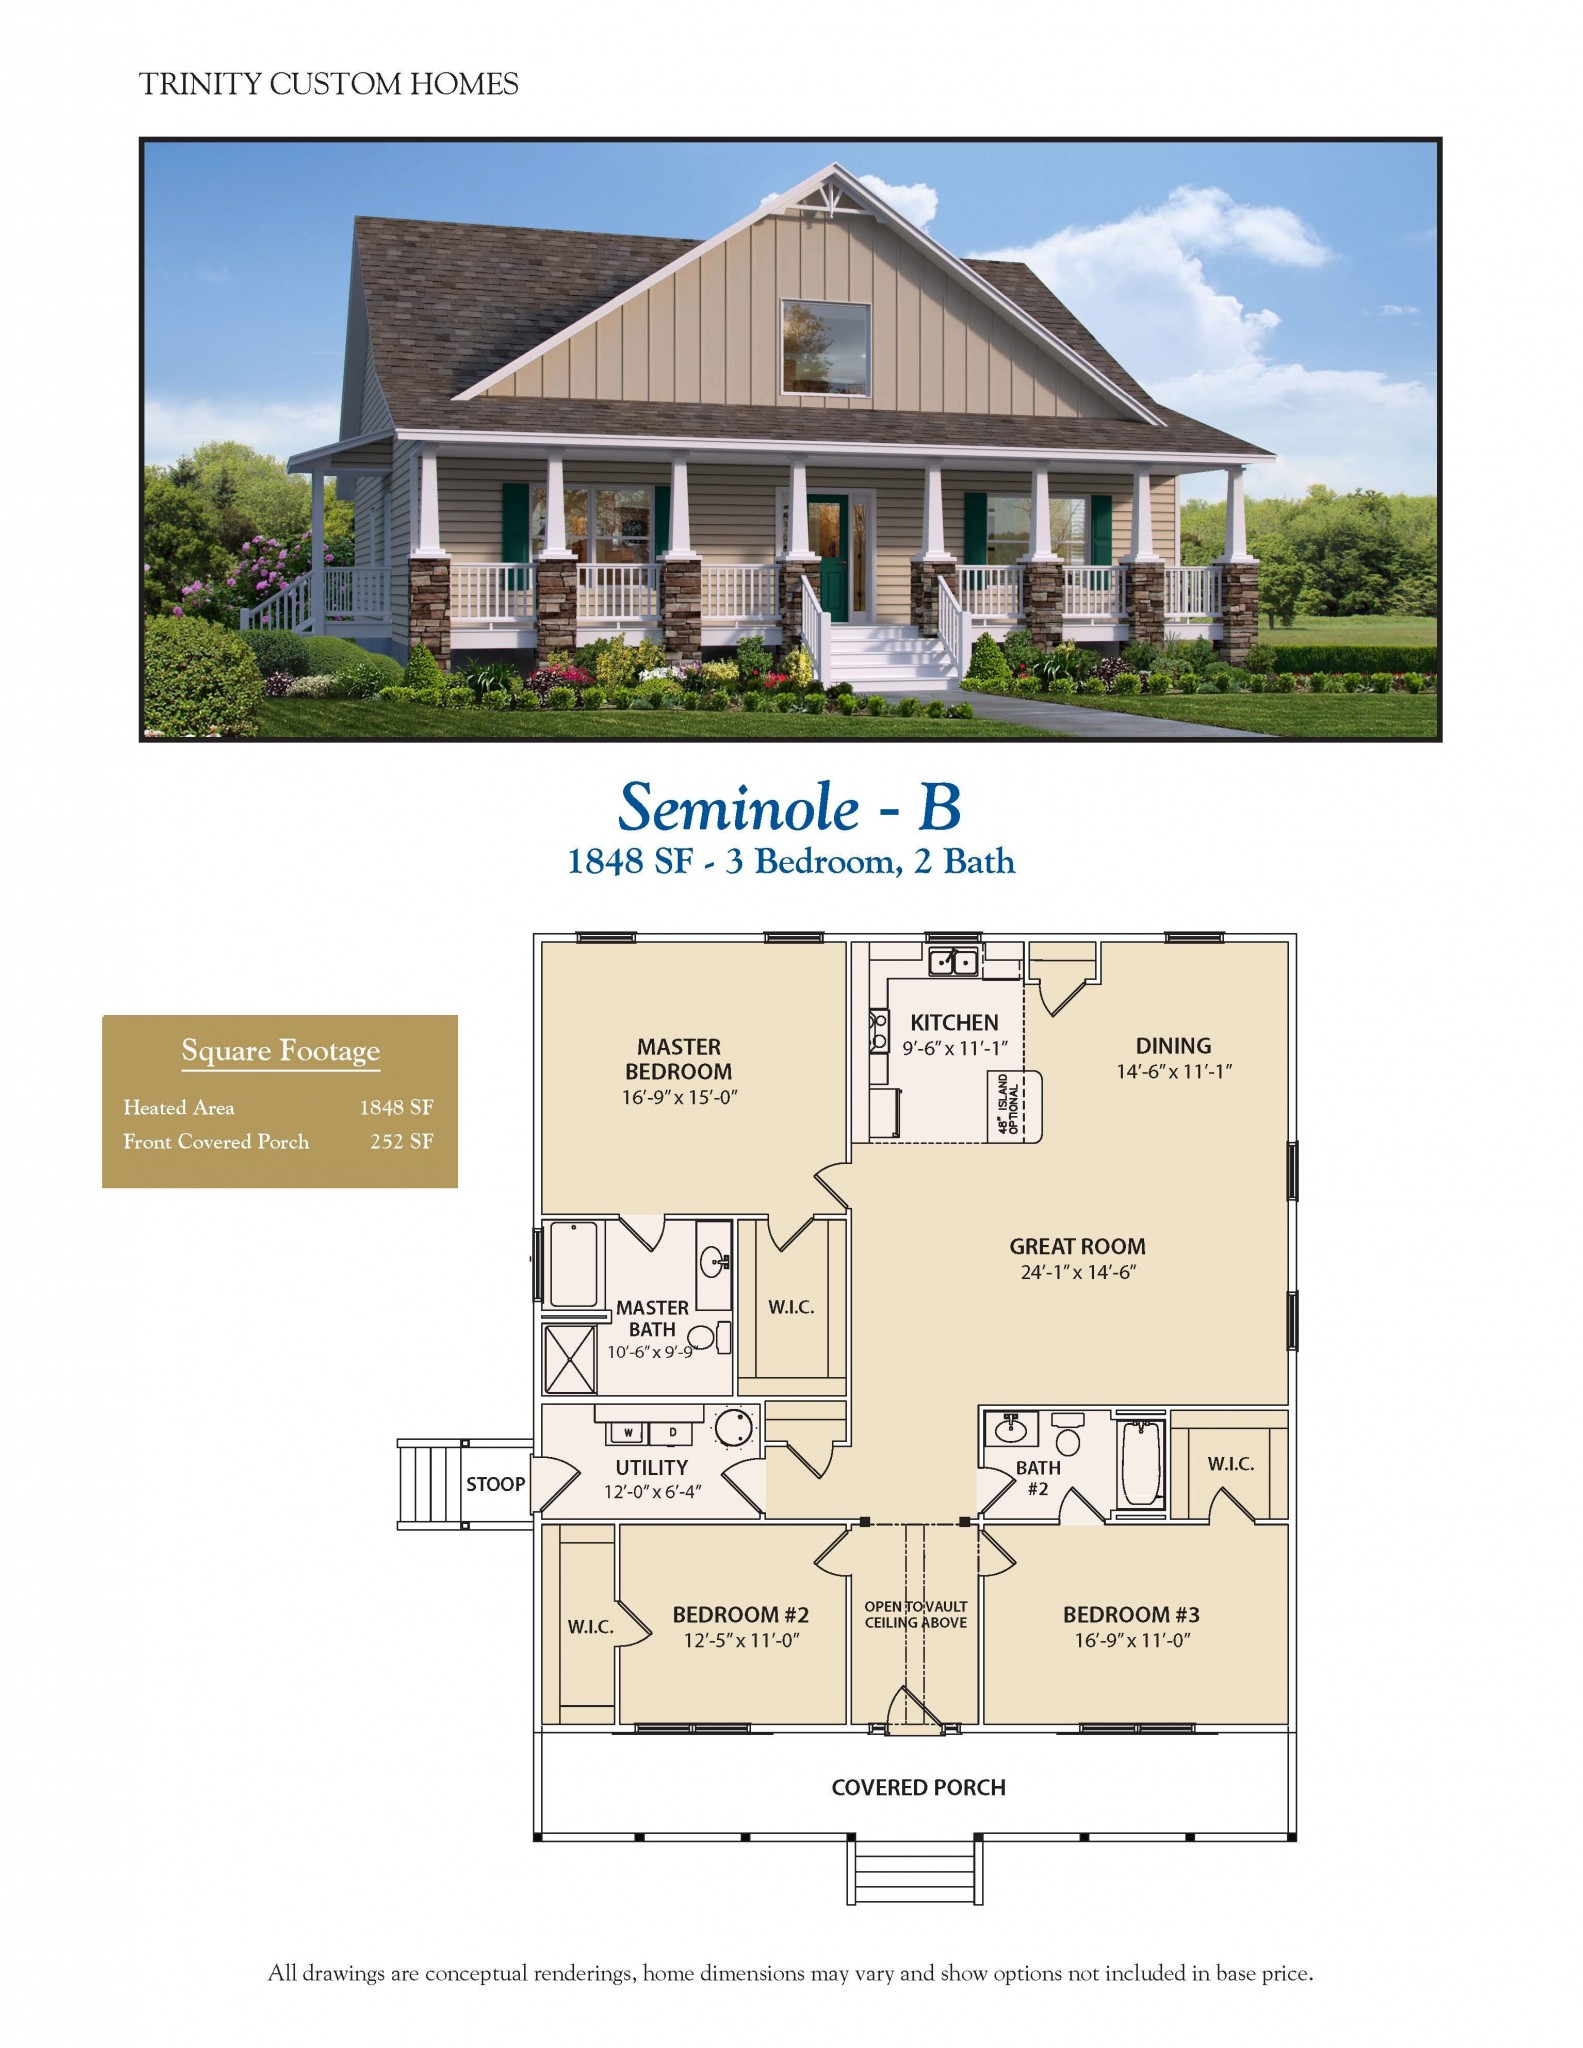 Seminole b welcome to trinity custom homes for Trinity homes floor plans